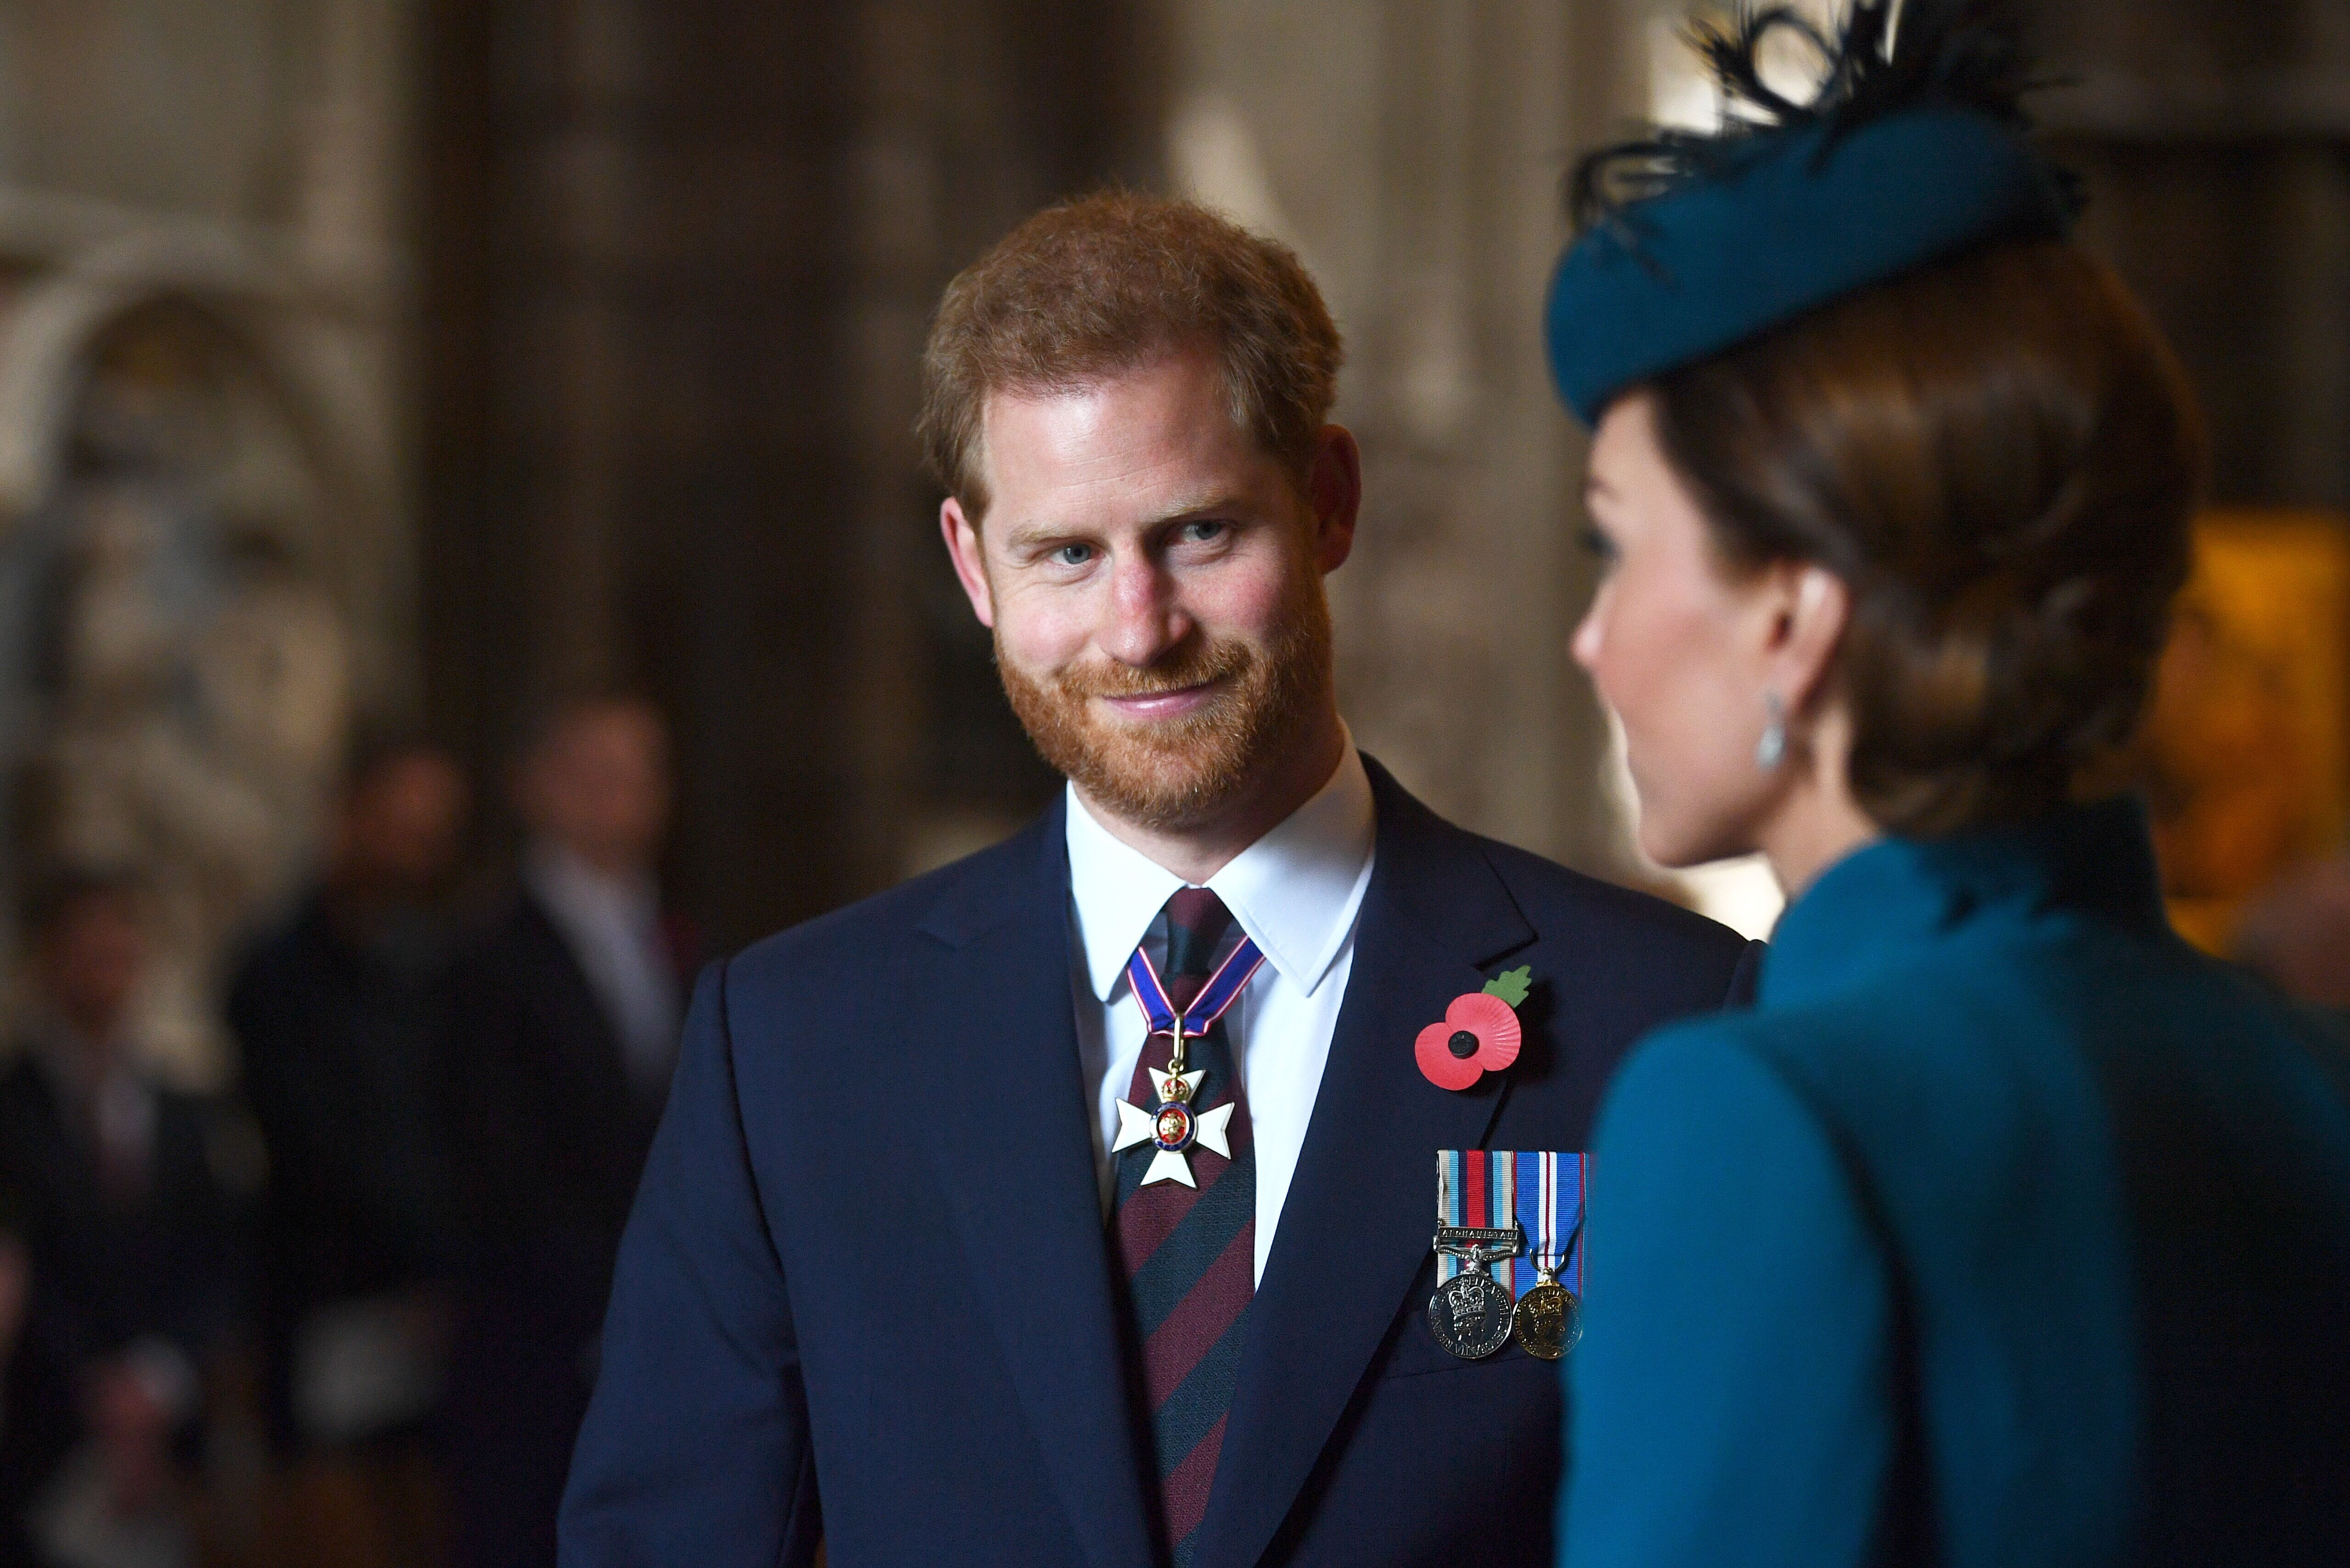 LONDON, ENGLAND - APRIL 25: Catherine, Duchess of Cambridge and Prince Harry, Duke of Sussex attend the ANZAC Day Service of Commemoration and Thanksgiving at Westminster Abbey on April 25, 2019 in London, United Kingdom. (Photo by Victoria Jones - WPA Pool/Getty Images)